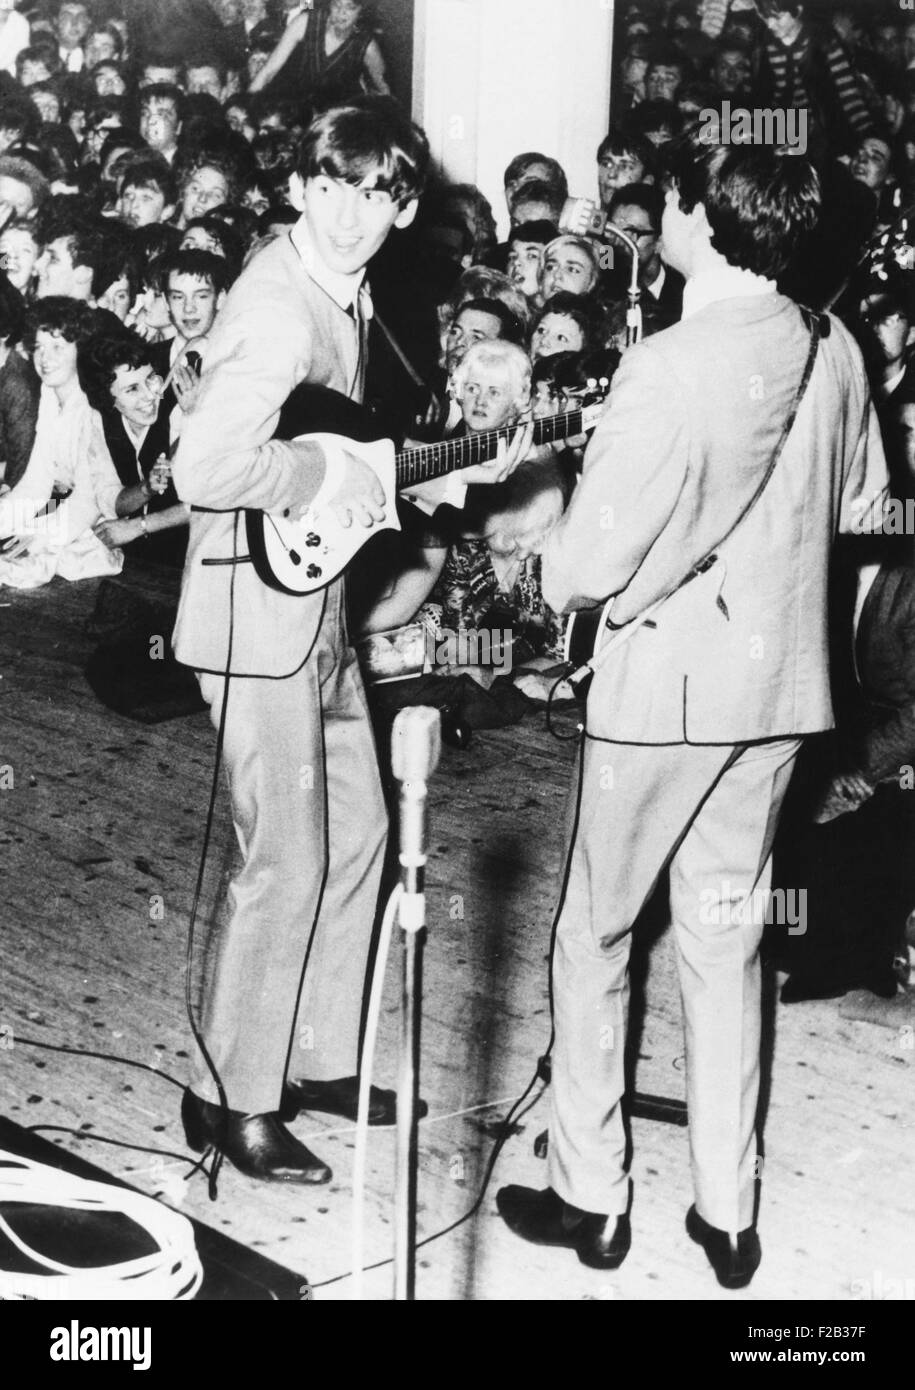 George Harrison (left) and Paul McCartney, of the Beatles perform in Manchester, England. Nov. 11, 1963. The original - Stock Image